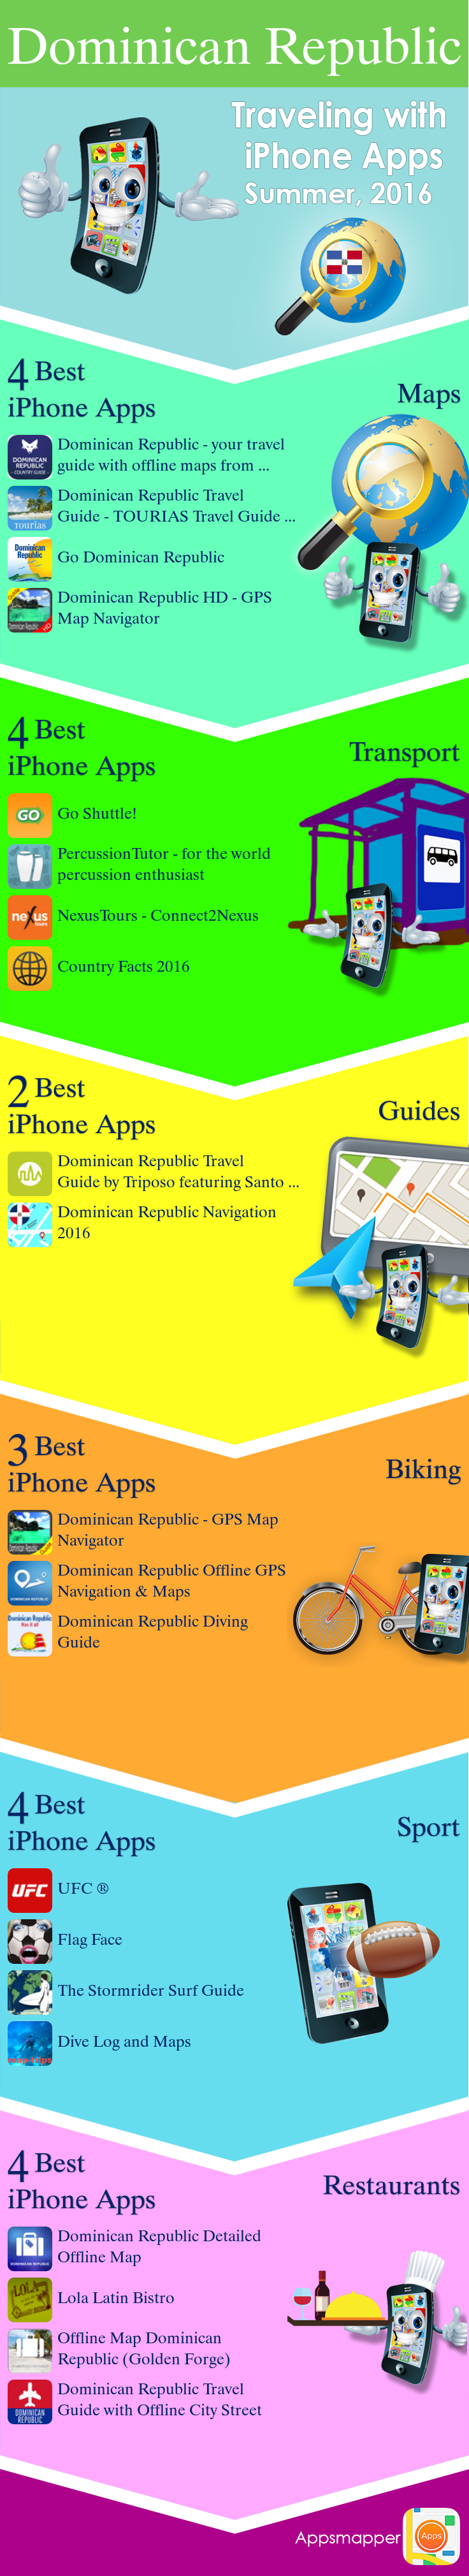 Dominican Republic Iphone Apps Travel Guides Maps